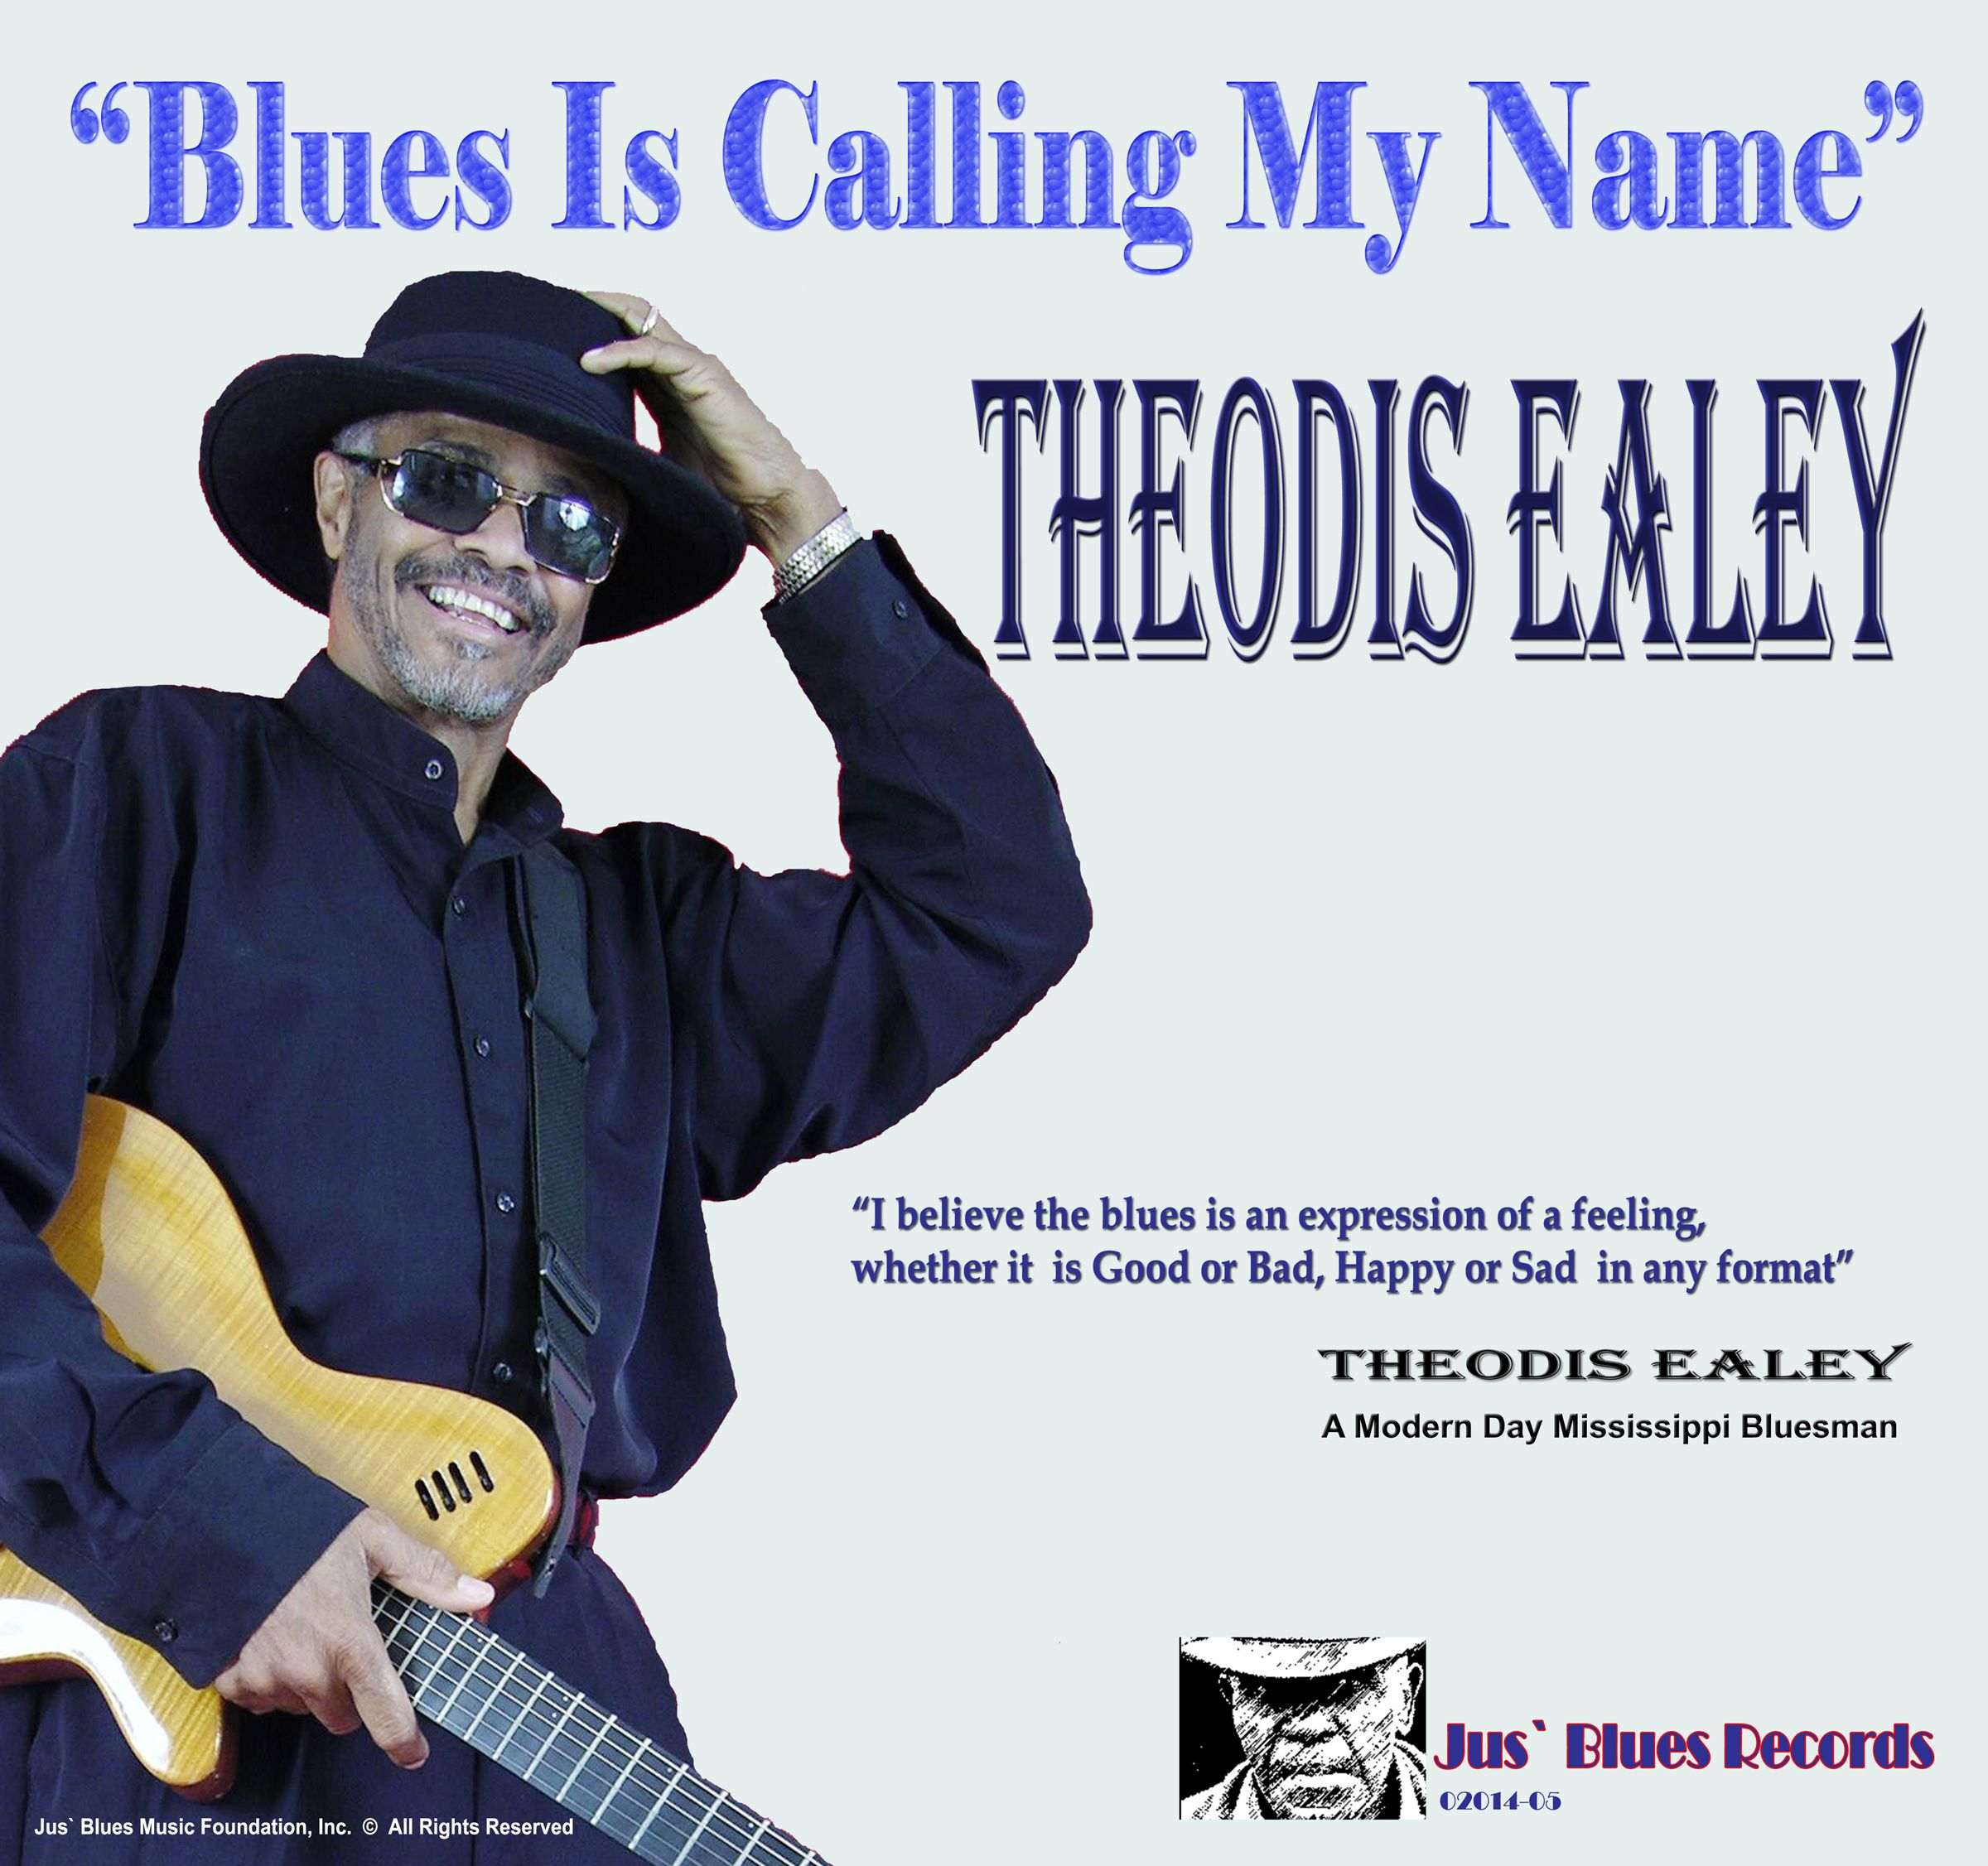 Theodis Ealey jams on this single from the up and coming documentary: Modern Day Mississippi Bluesman...documentary by: Jus Blues Music Foundation...get your copy of this great song today! Itunes and amazon